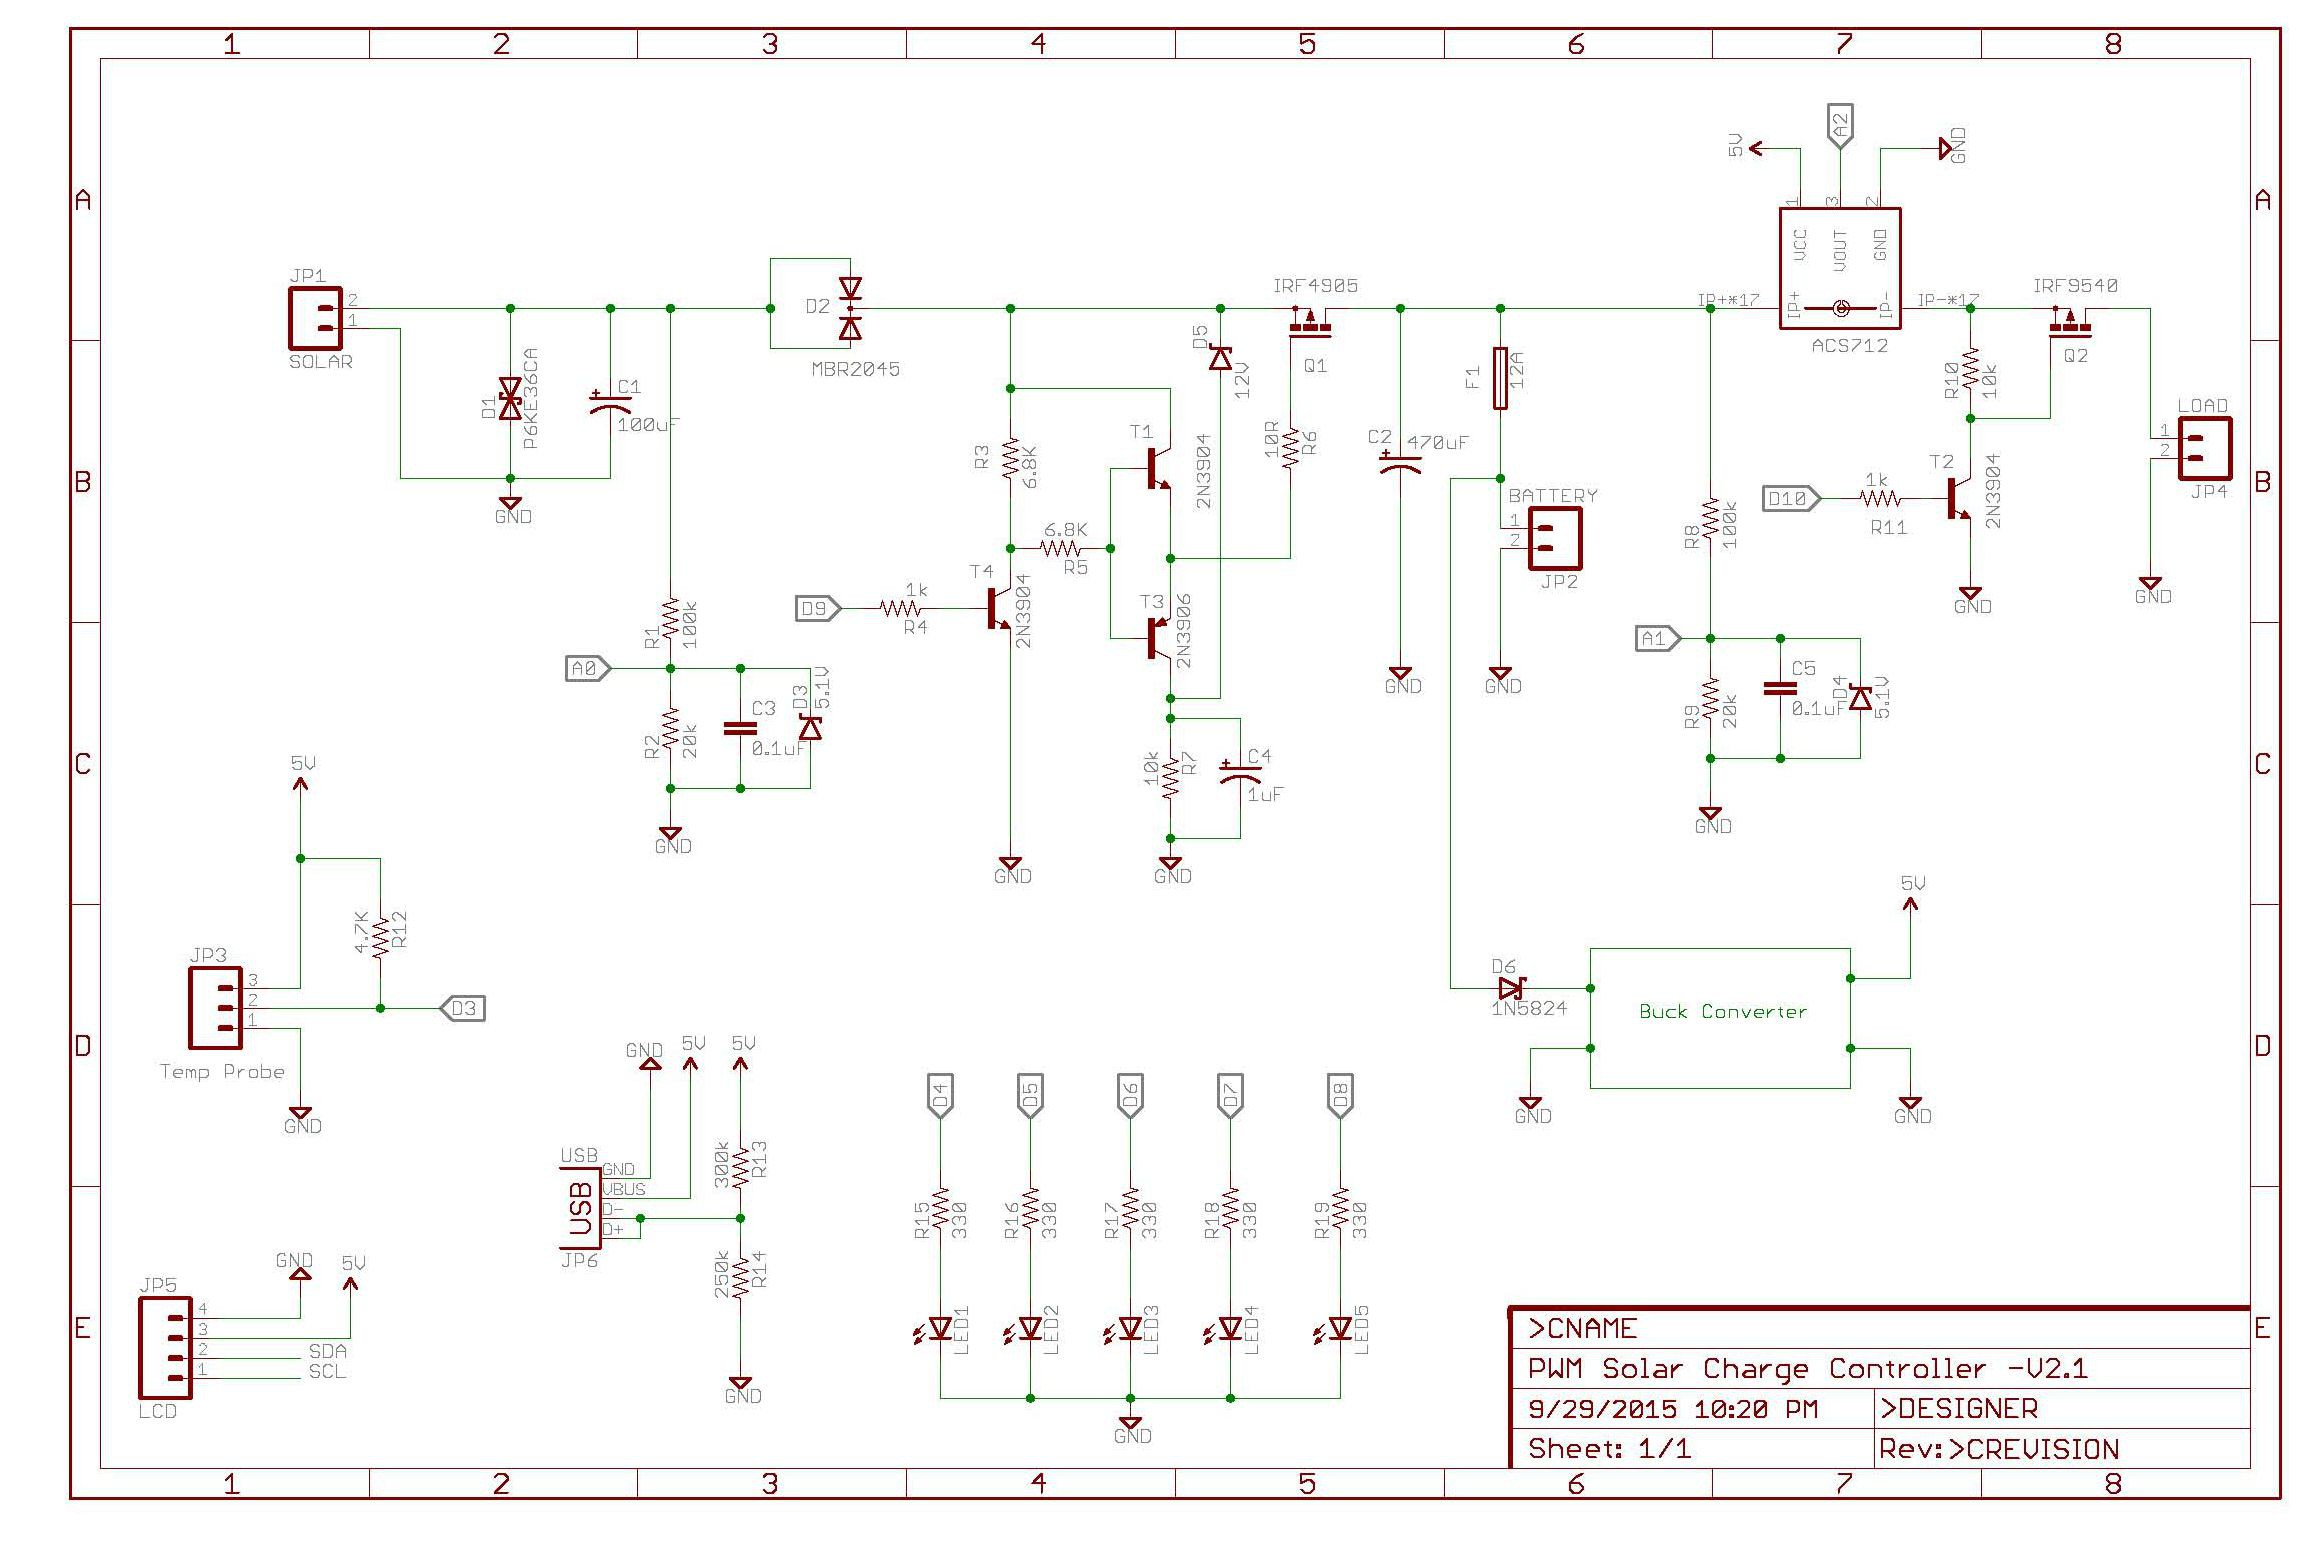 pwm solar charge controller circuit diagram central heating controls wiring diagrams arduino hackaday io shematic for v2 1